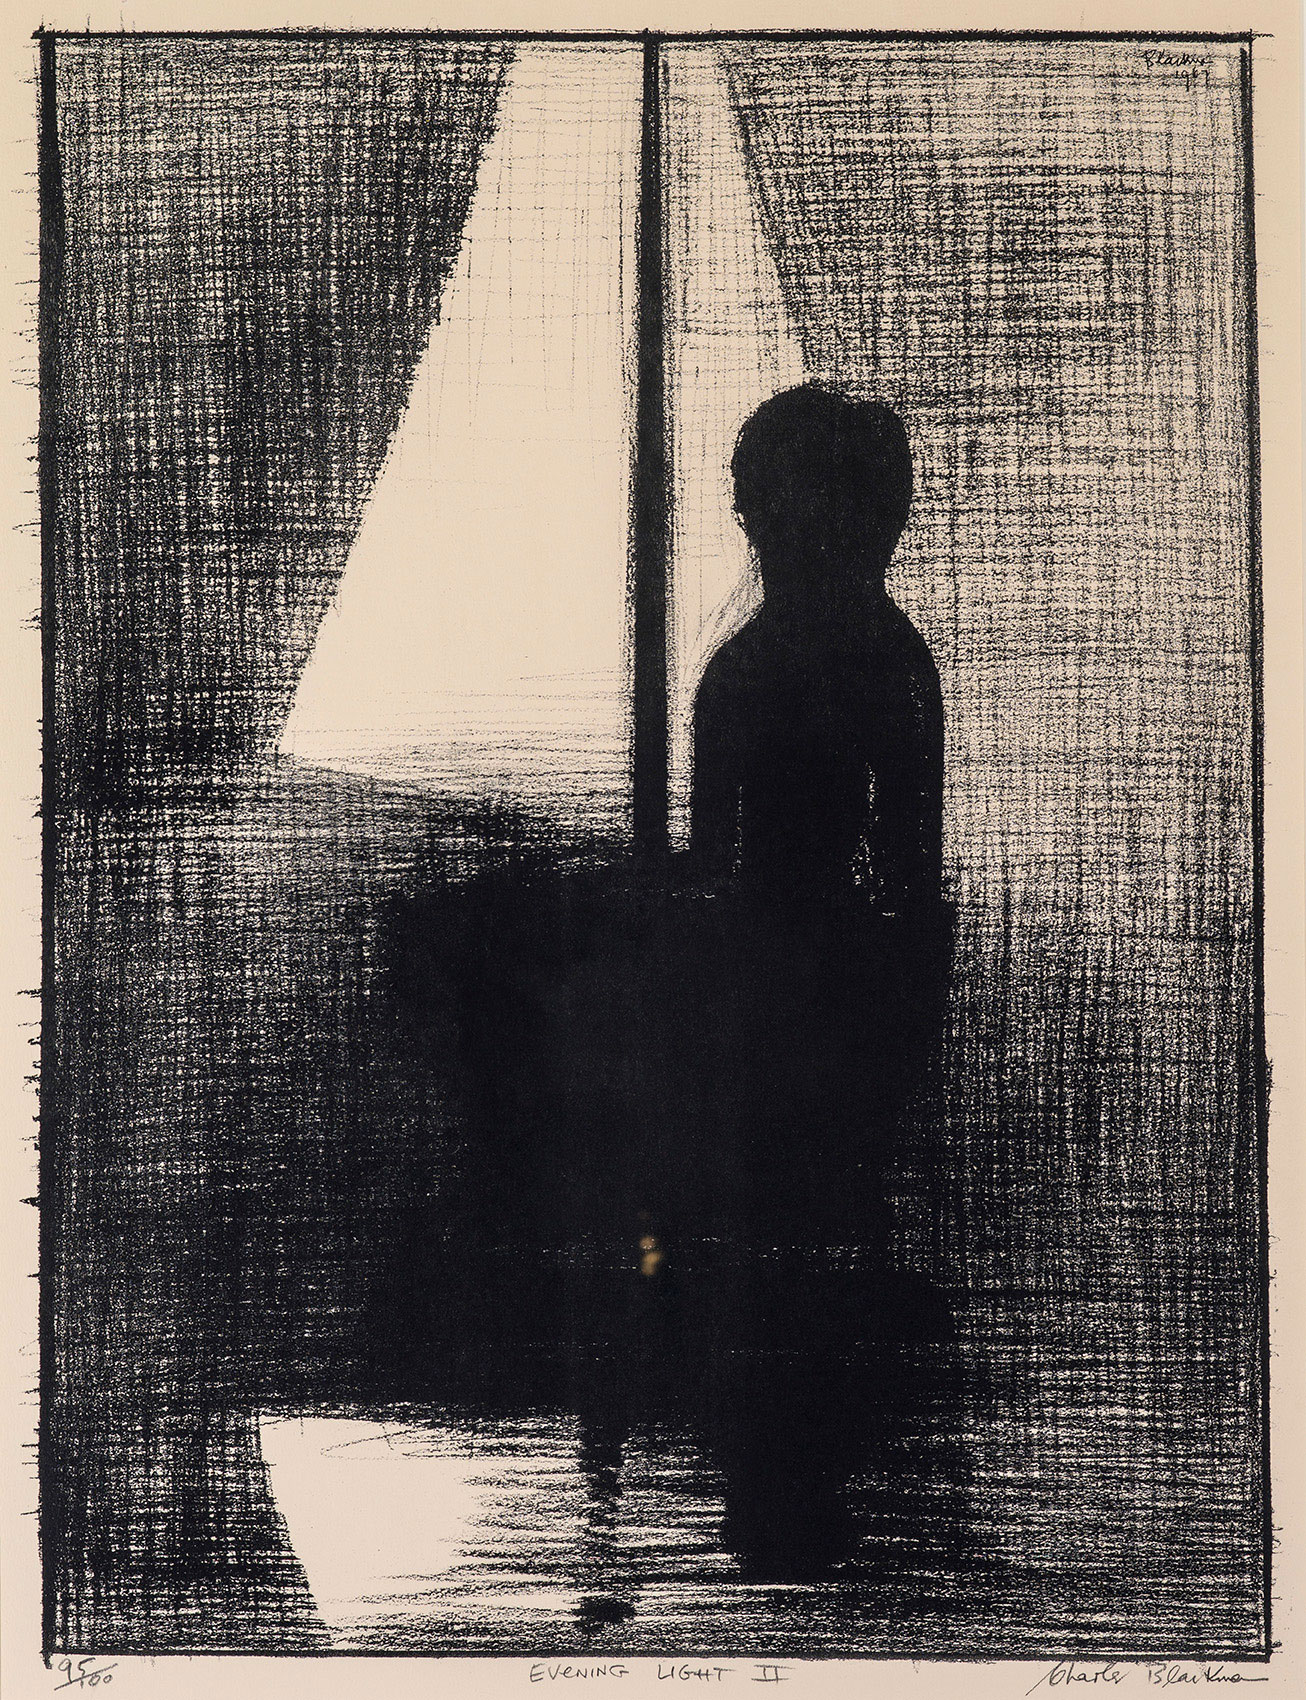 Charles BLACKMAN 'Evening light II' 1967 | lithograph | QUT Art Collection | Purchased by student donations, 1967 | Photo by Carl Warner.